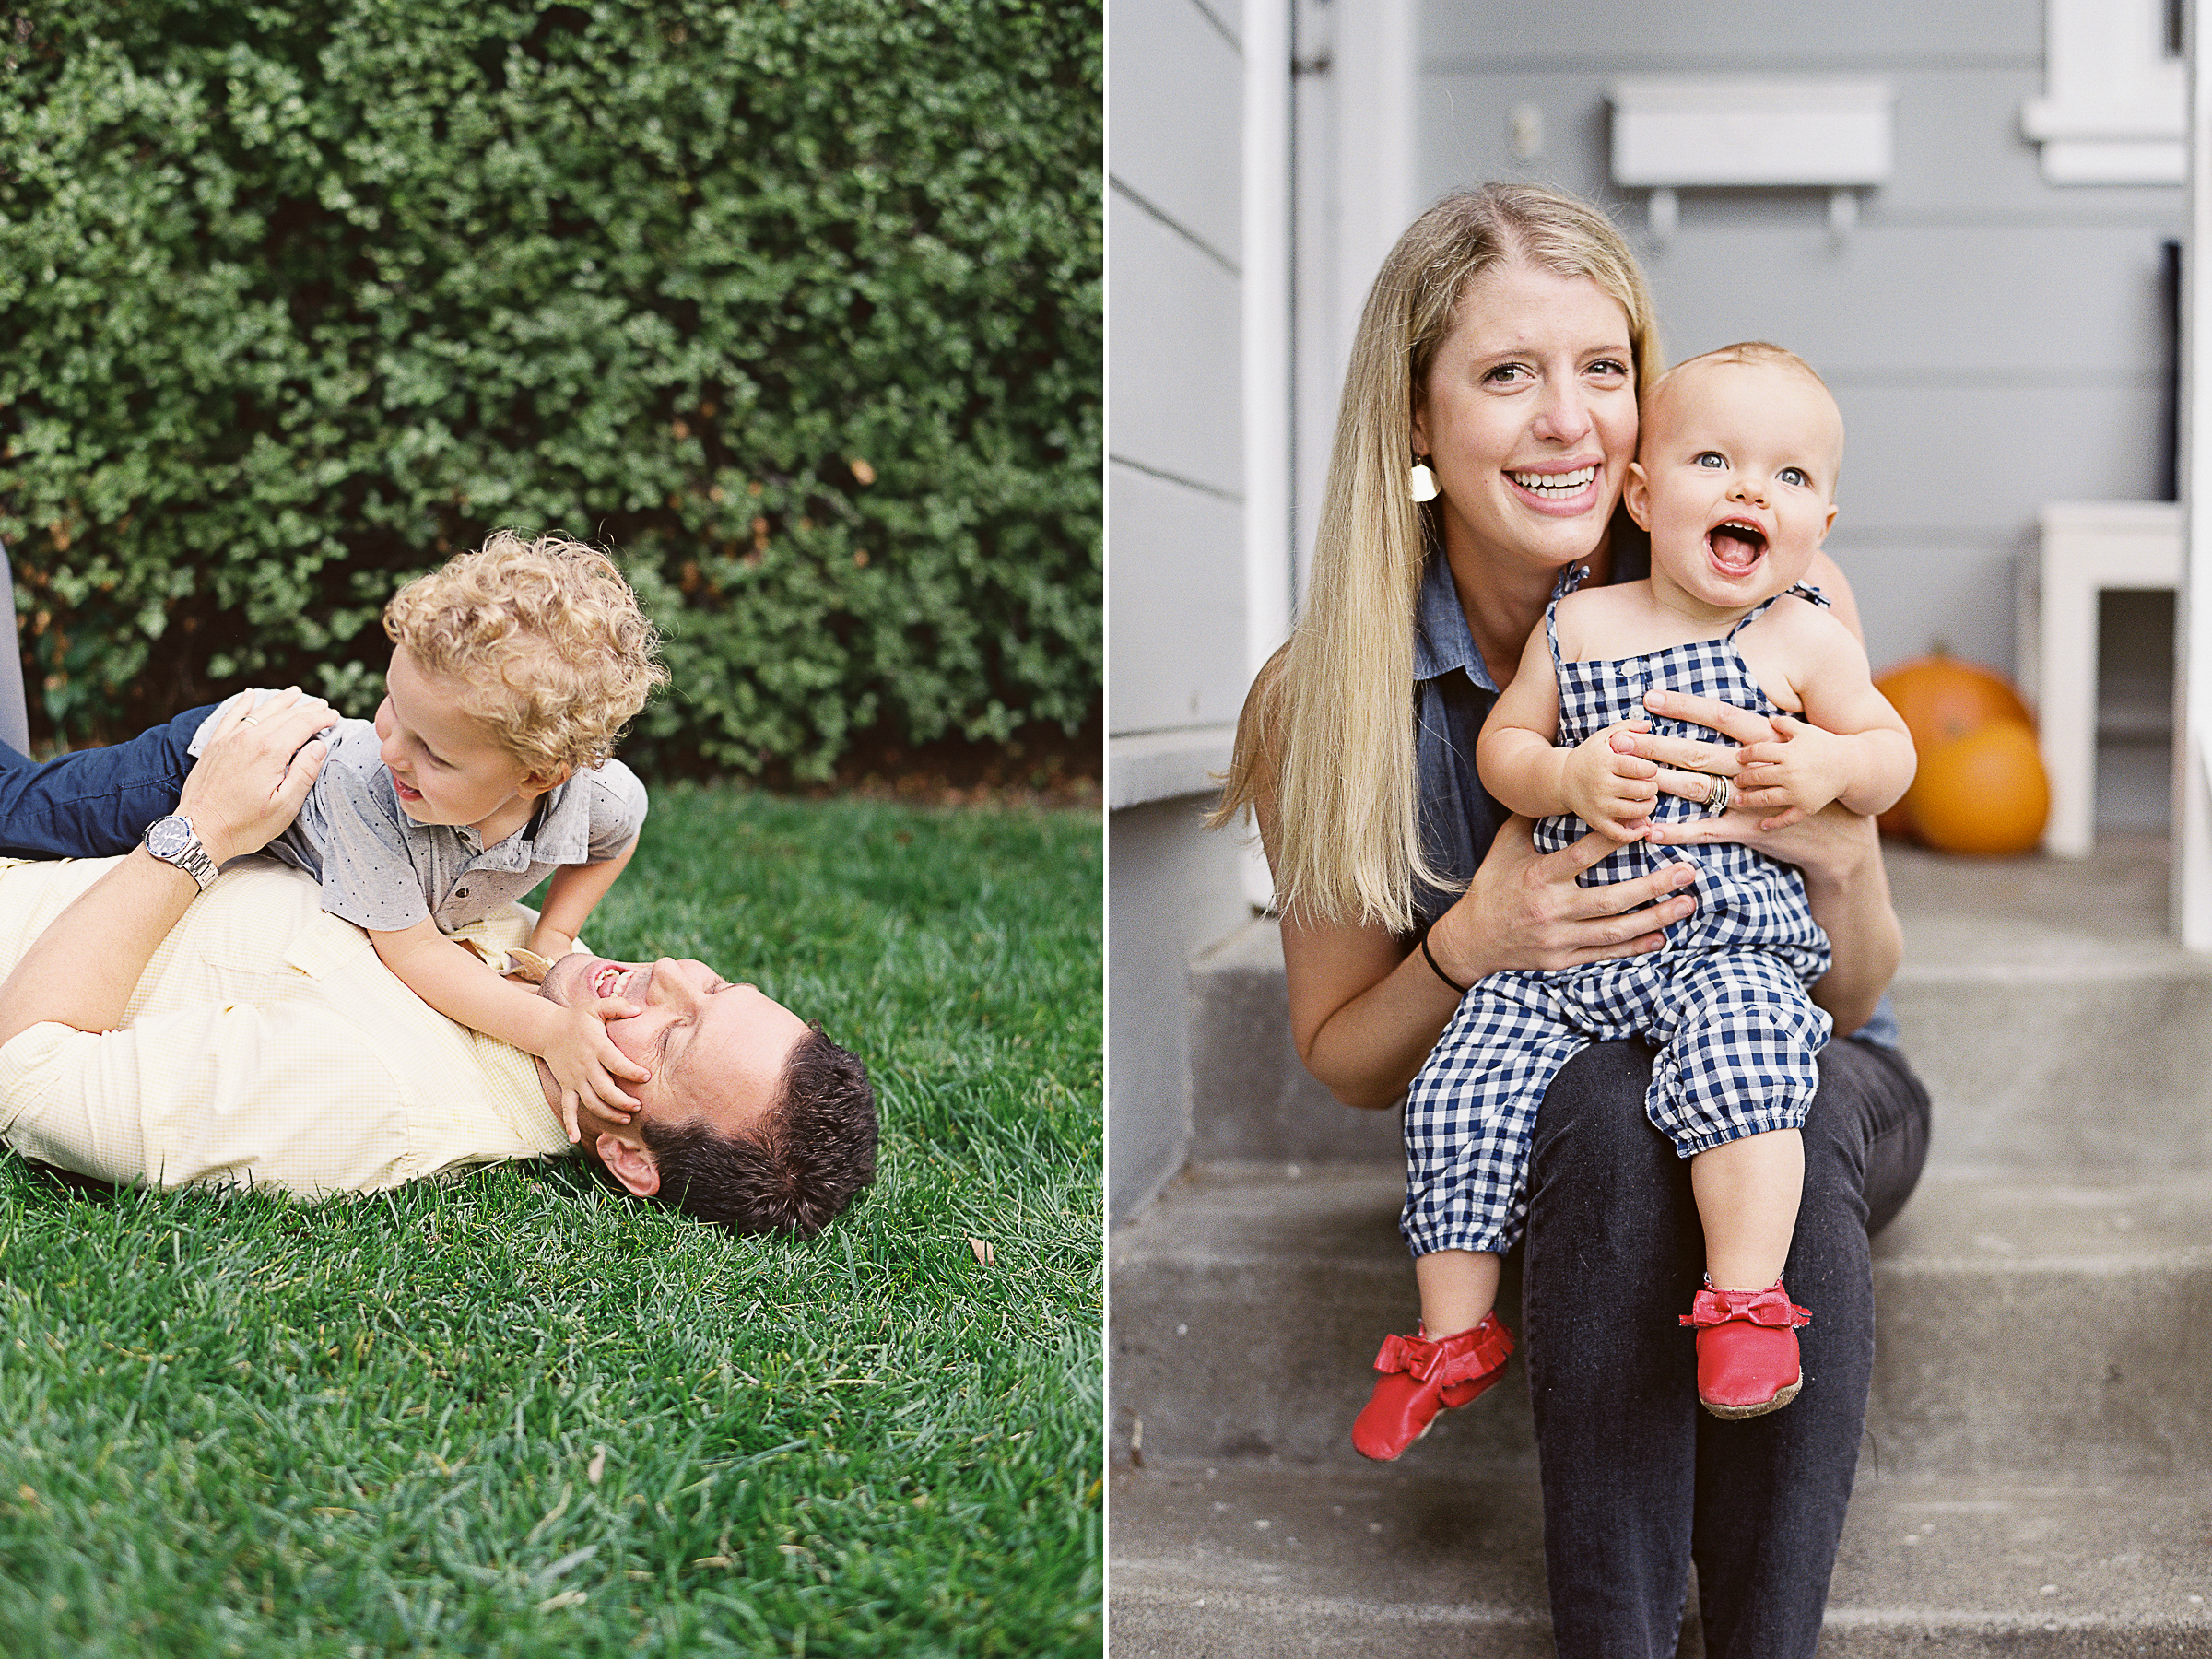 Meghan Mehan Photography - San Francisco Newborn and Family Photographer 040.jpg